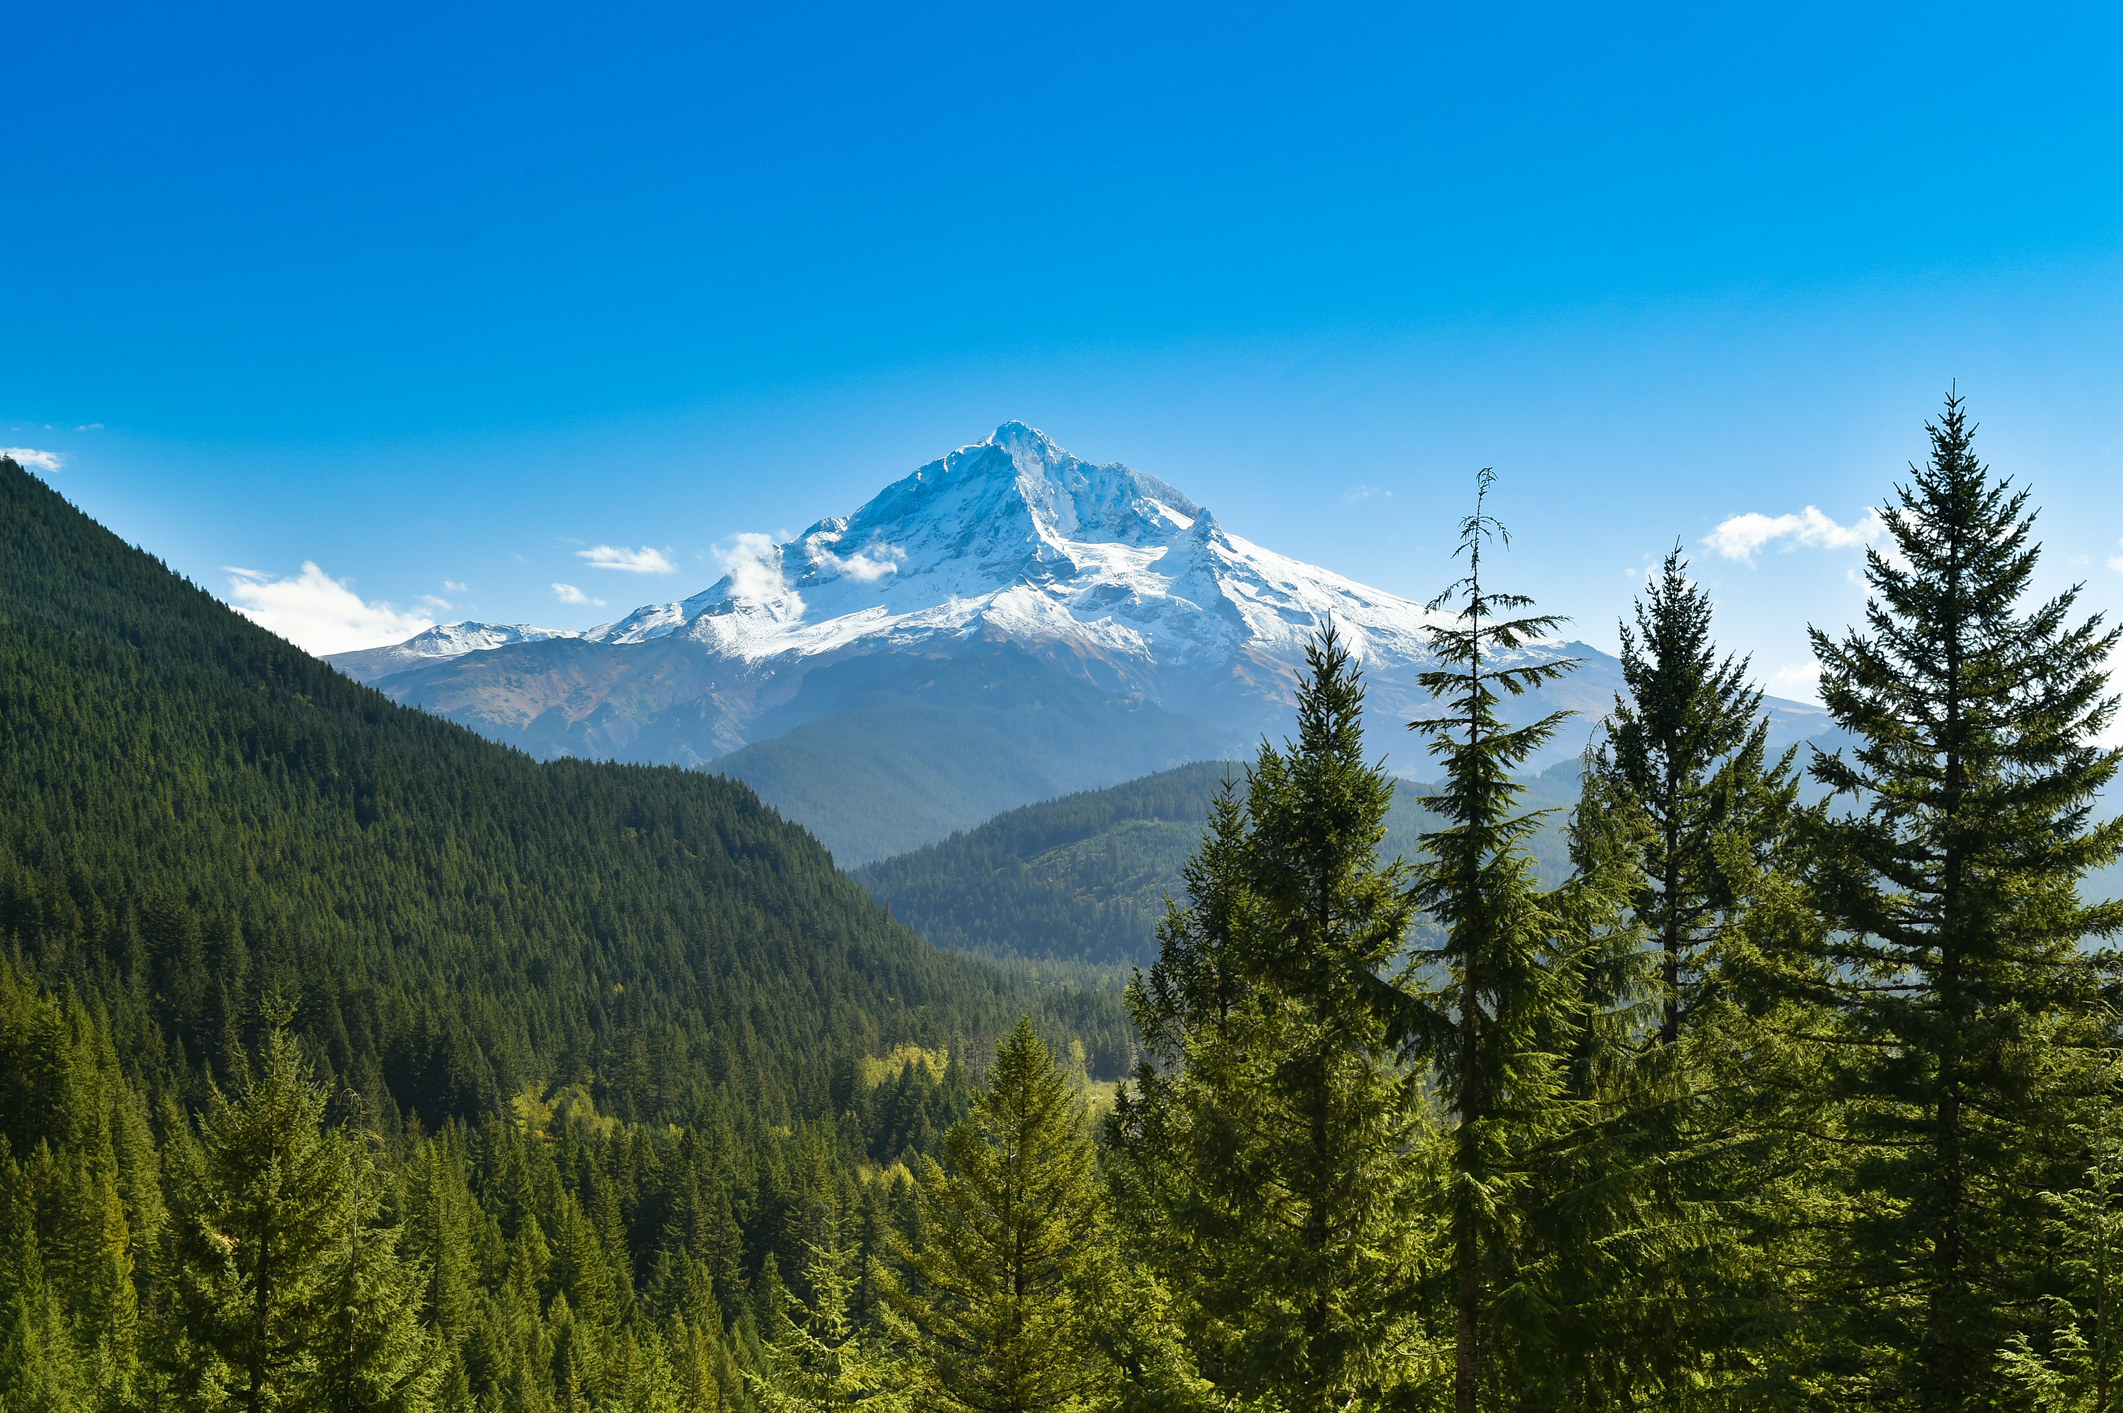 Snow capped Mt. Hood extends out of hills of dark green trees into a blue, cloud-less sky